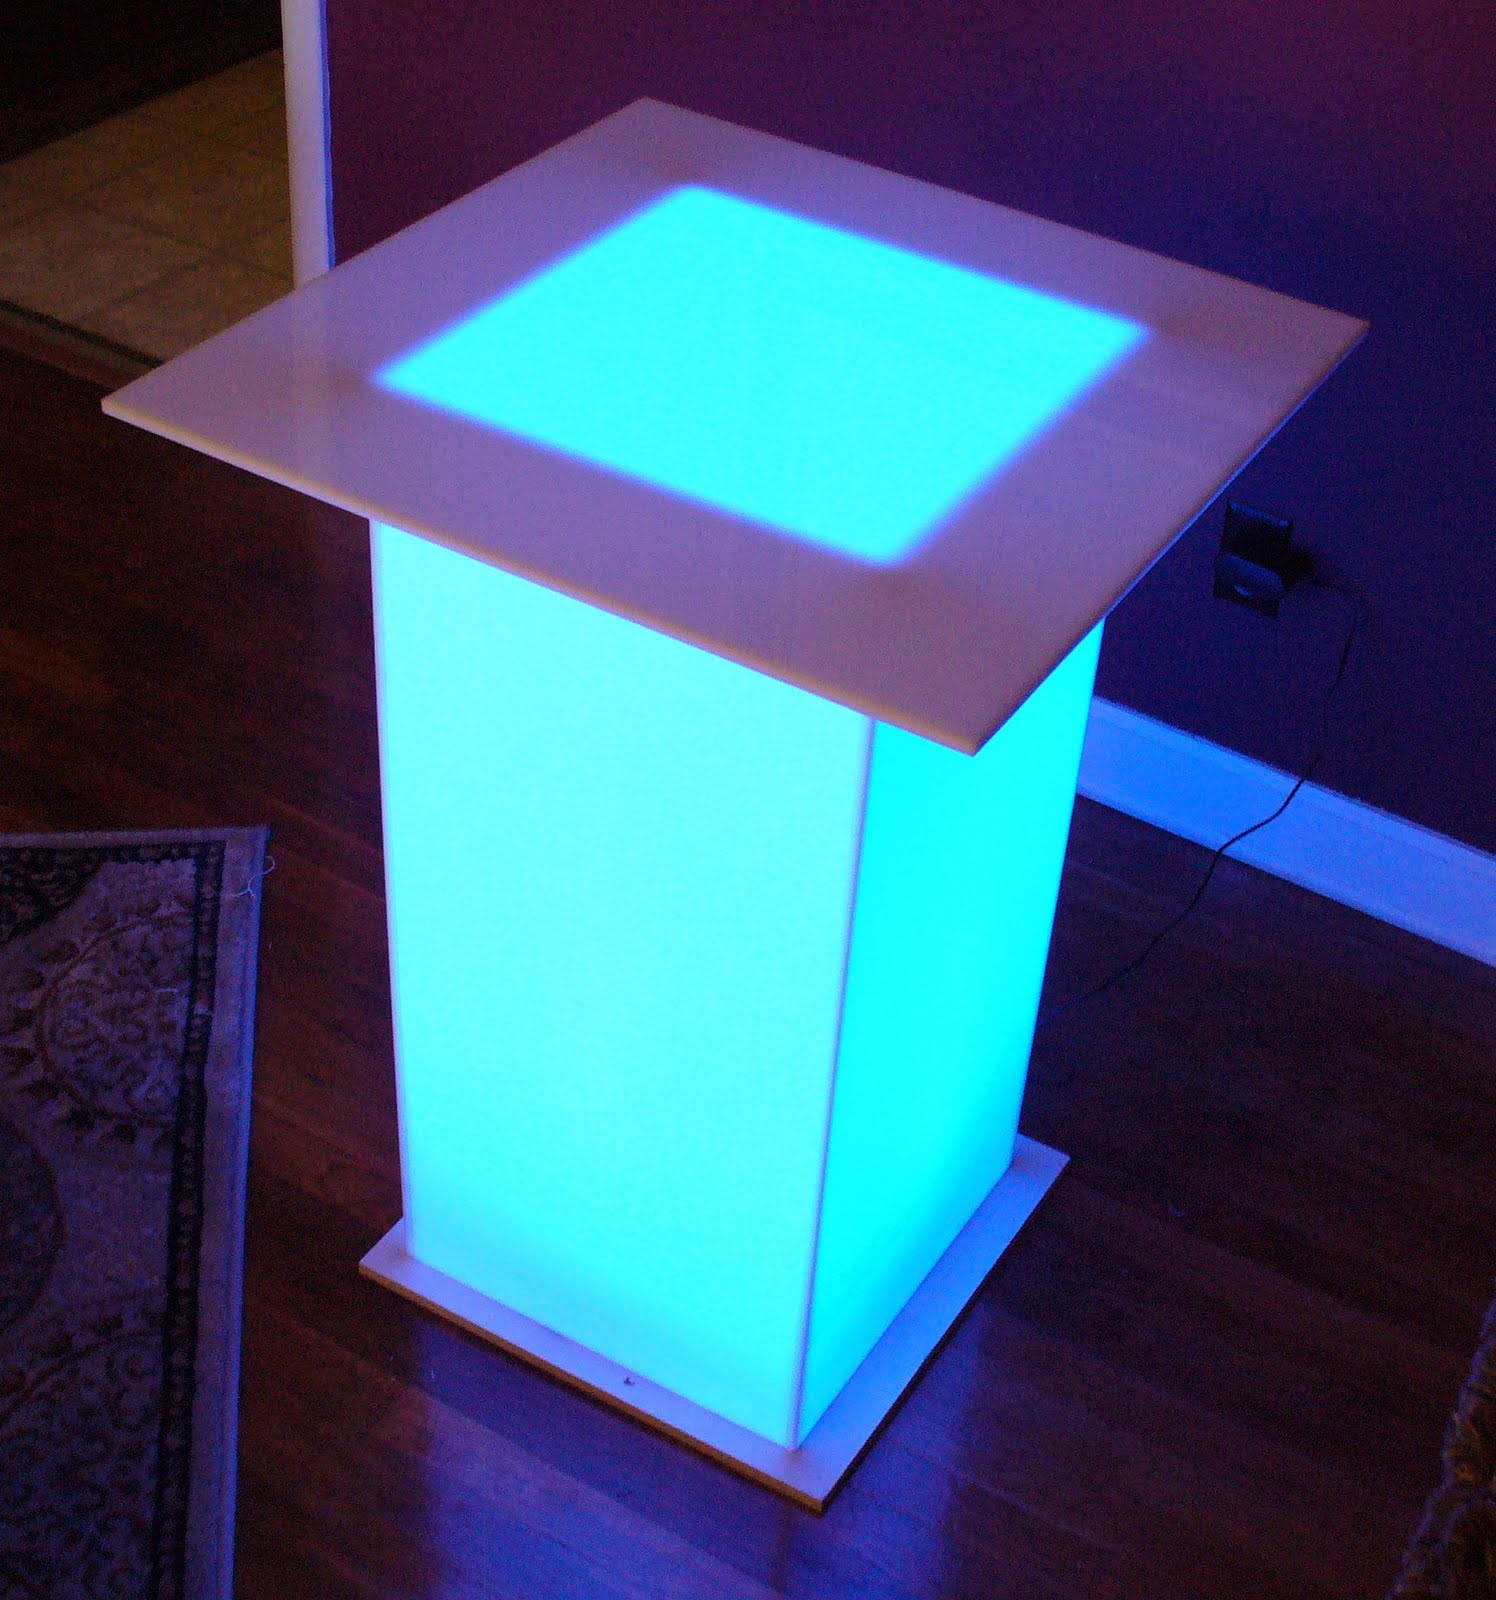 Lovely BarChefu0027s Has Added A New Line Of Portable Light Up Tables To Our LED  Furniture Line Up. Offered In 2 Sizes To Fit Different Needs.